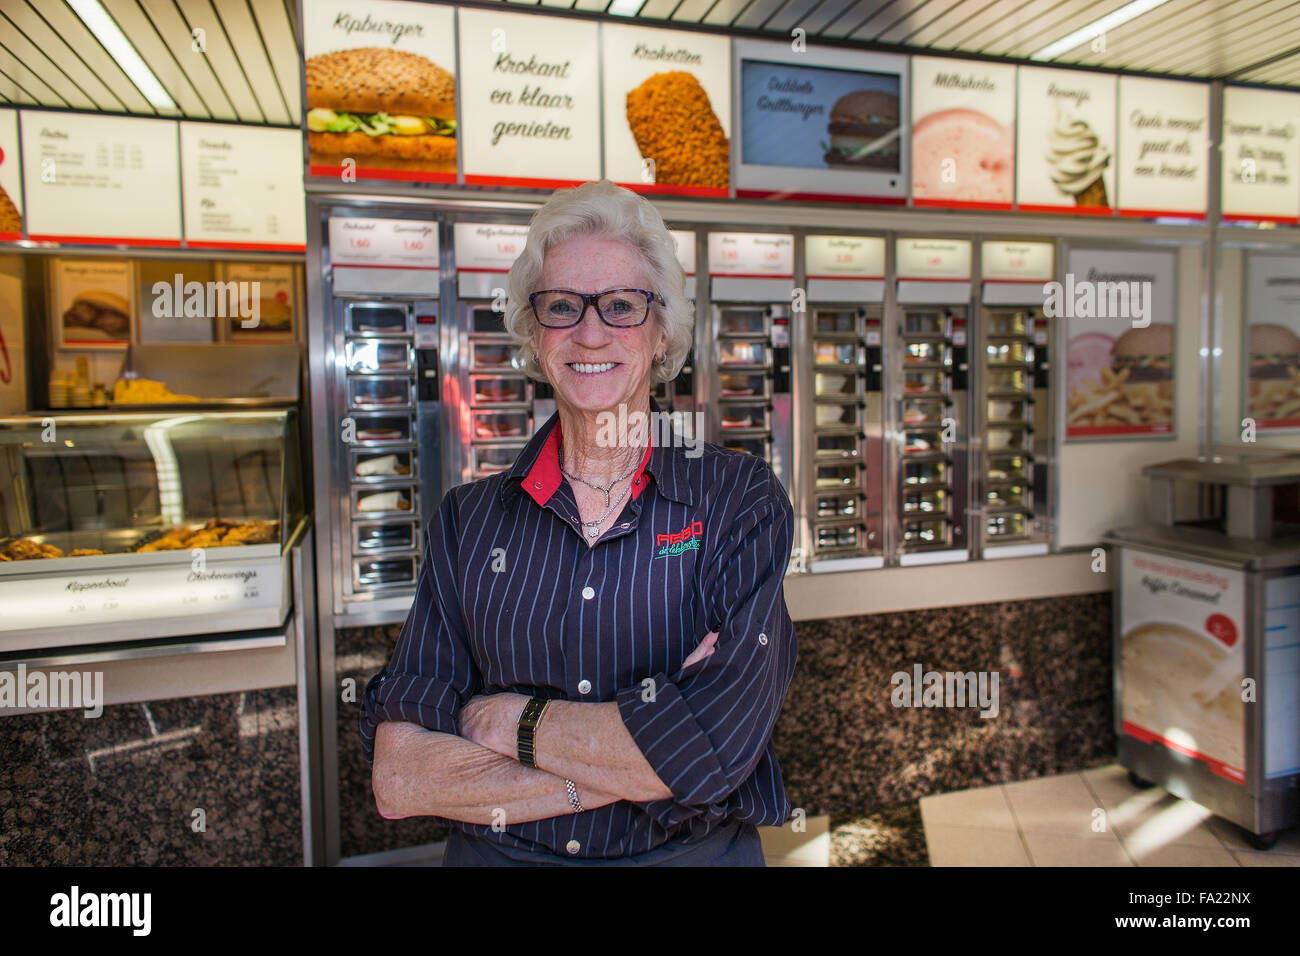 Yvonne Blom (72), owner of fast Food restaurant FEBO in Holland. Clients can 'pull food from a wall'. - Stock Image